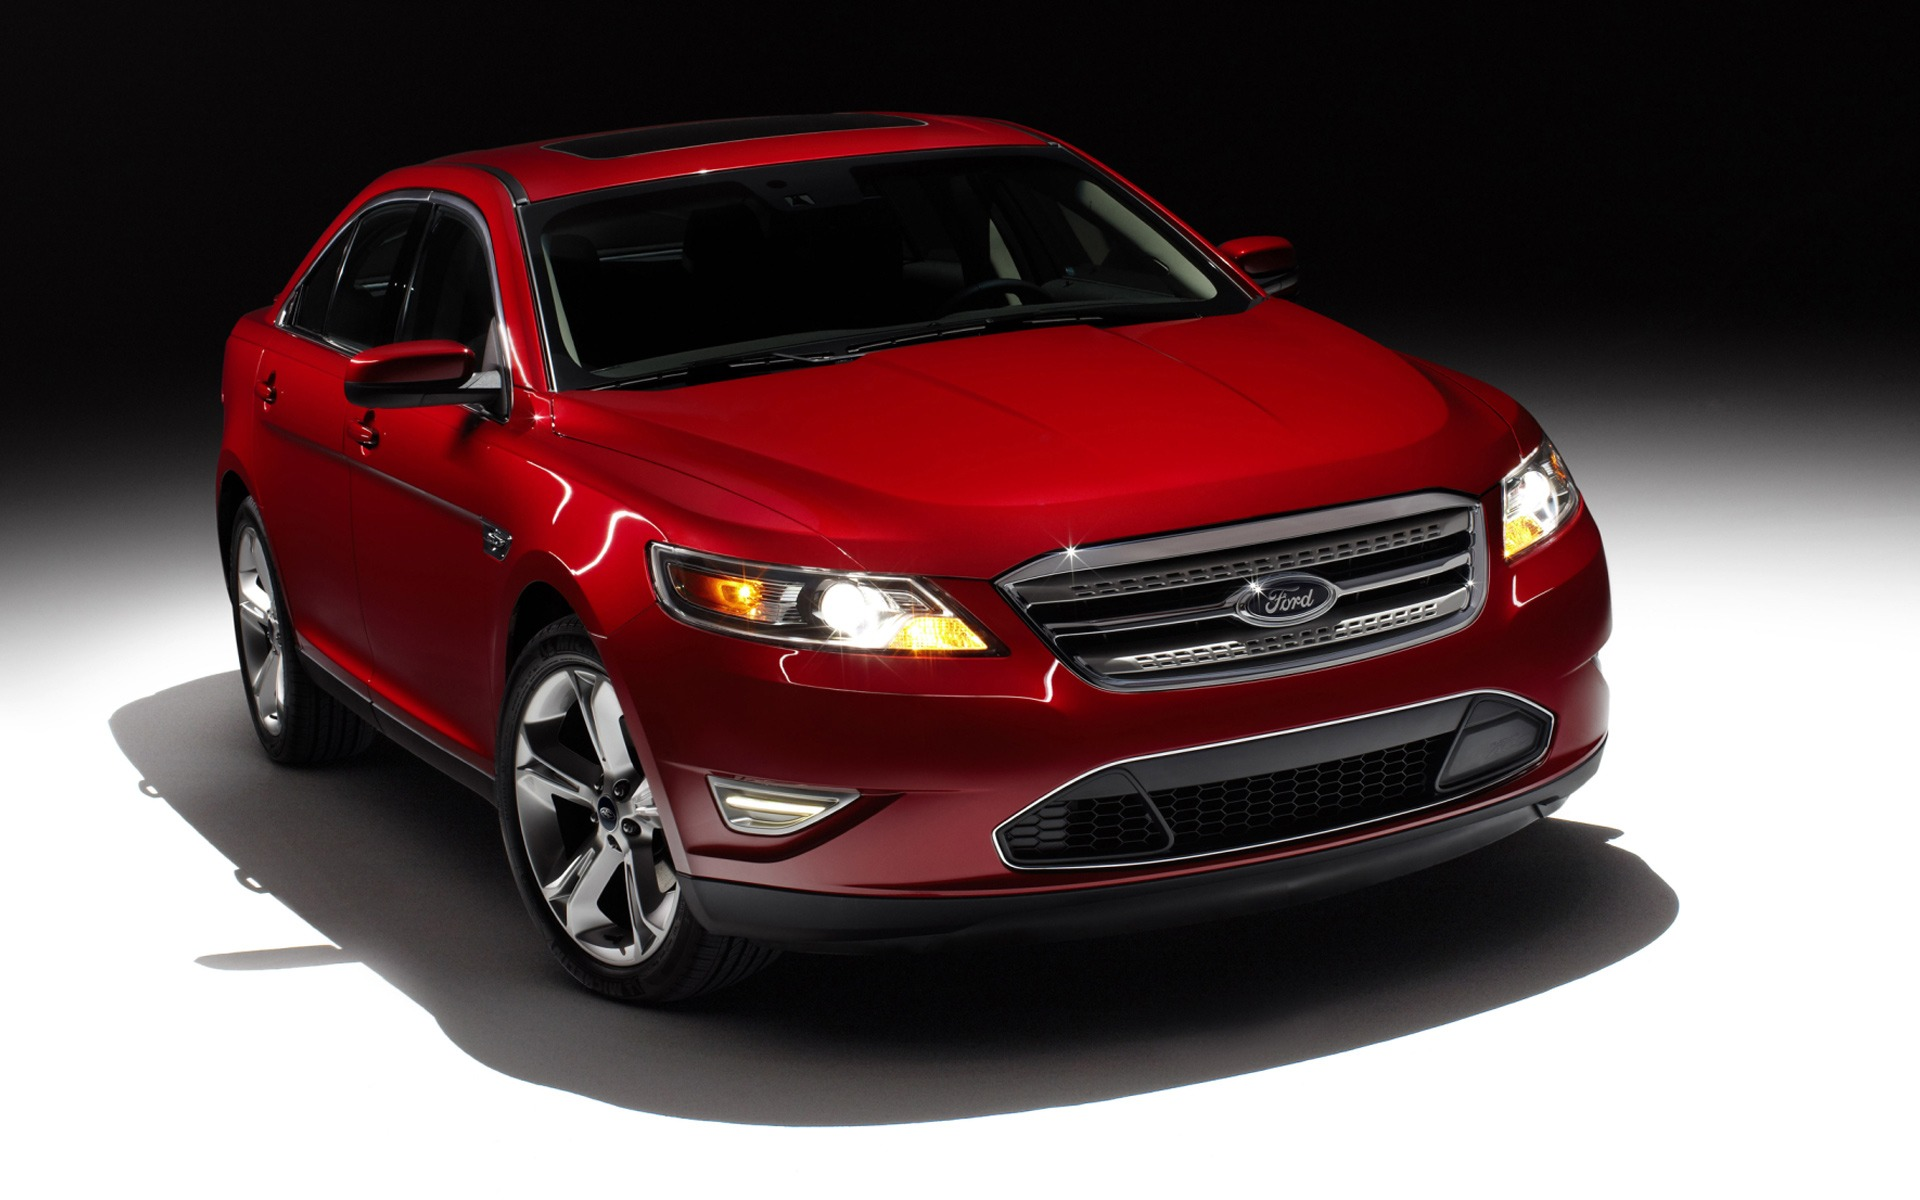 Ford Taurus Wallpaper Ford Cars Wallpapers in jpg format for free ...